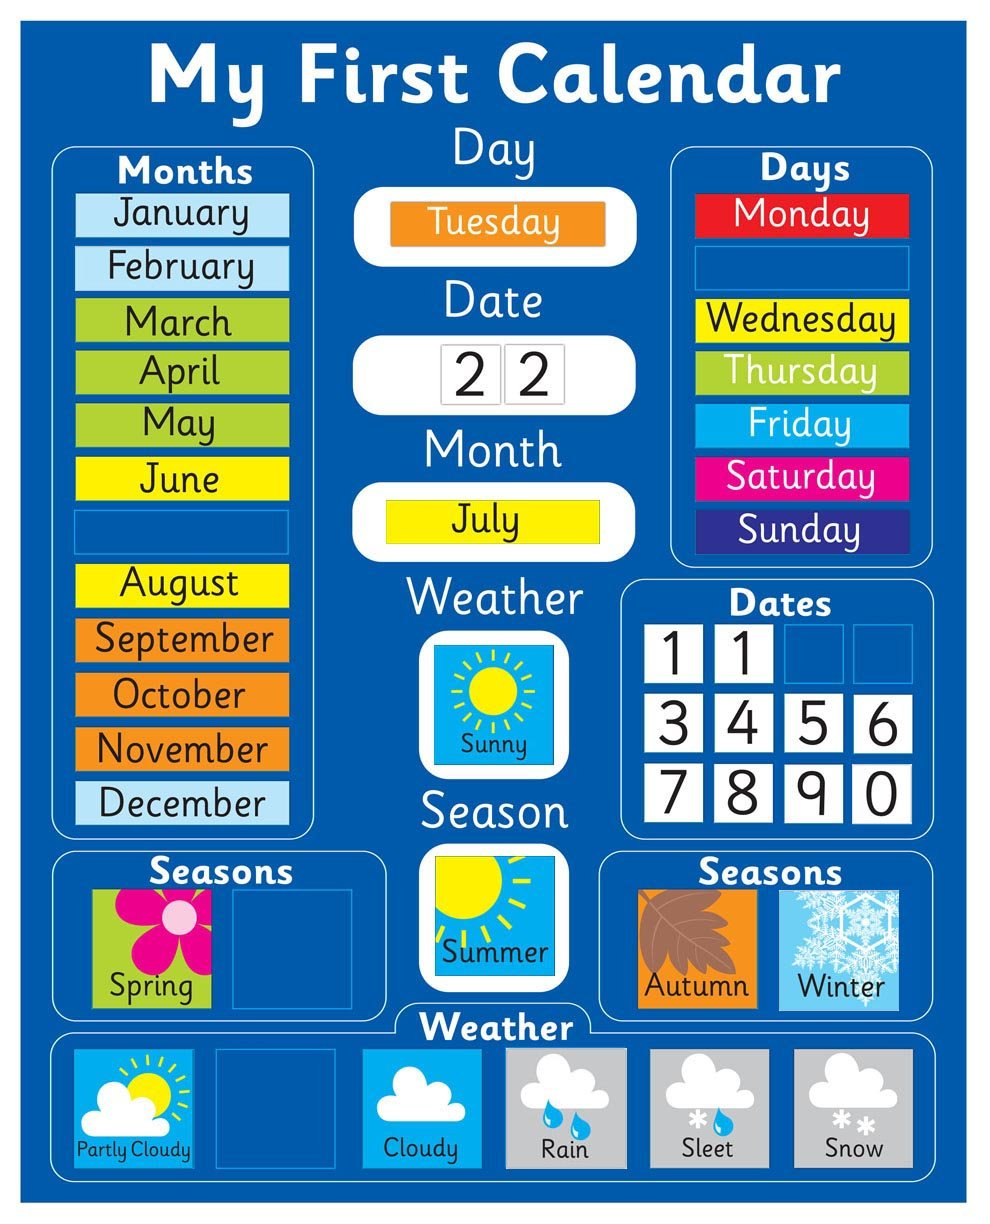 Magnetic My First Learning Calendar - Blue Rigid board 16 x 13 (40 x 32cm) with hanging loop (Designed in the UK & Top seller on Amazon UK) Indigo Worldwide